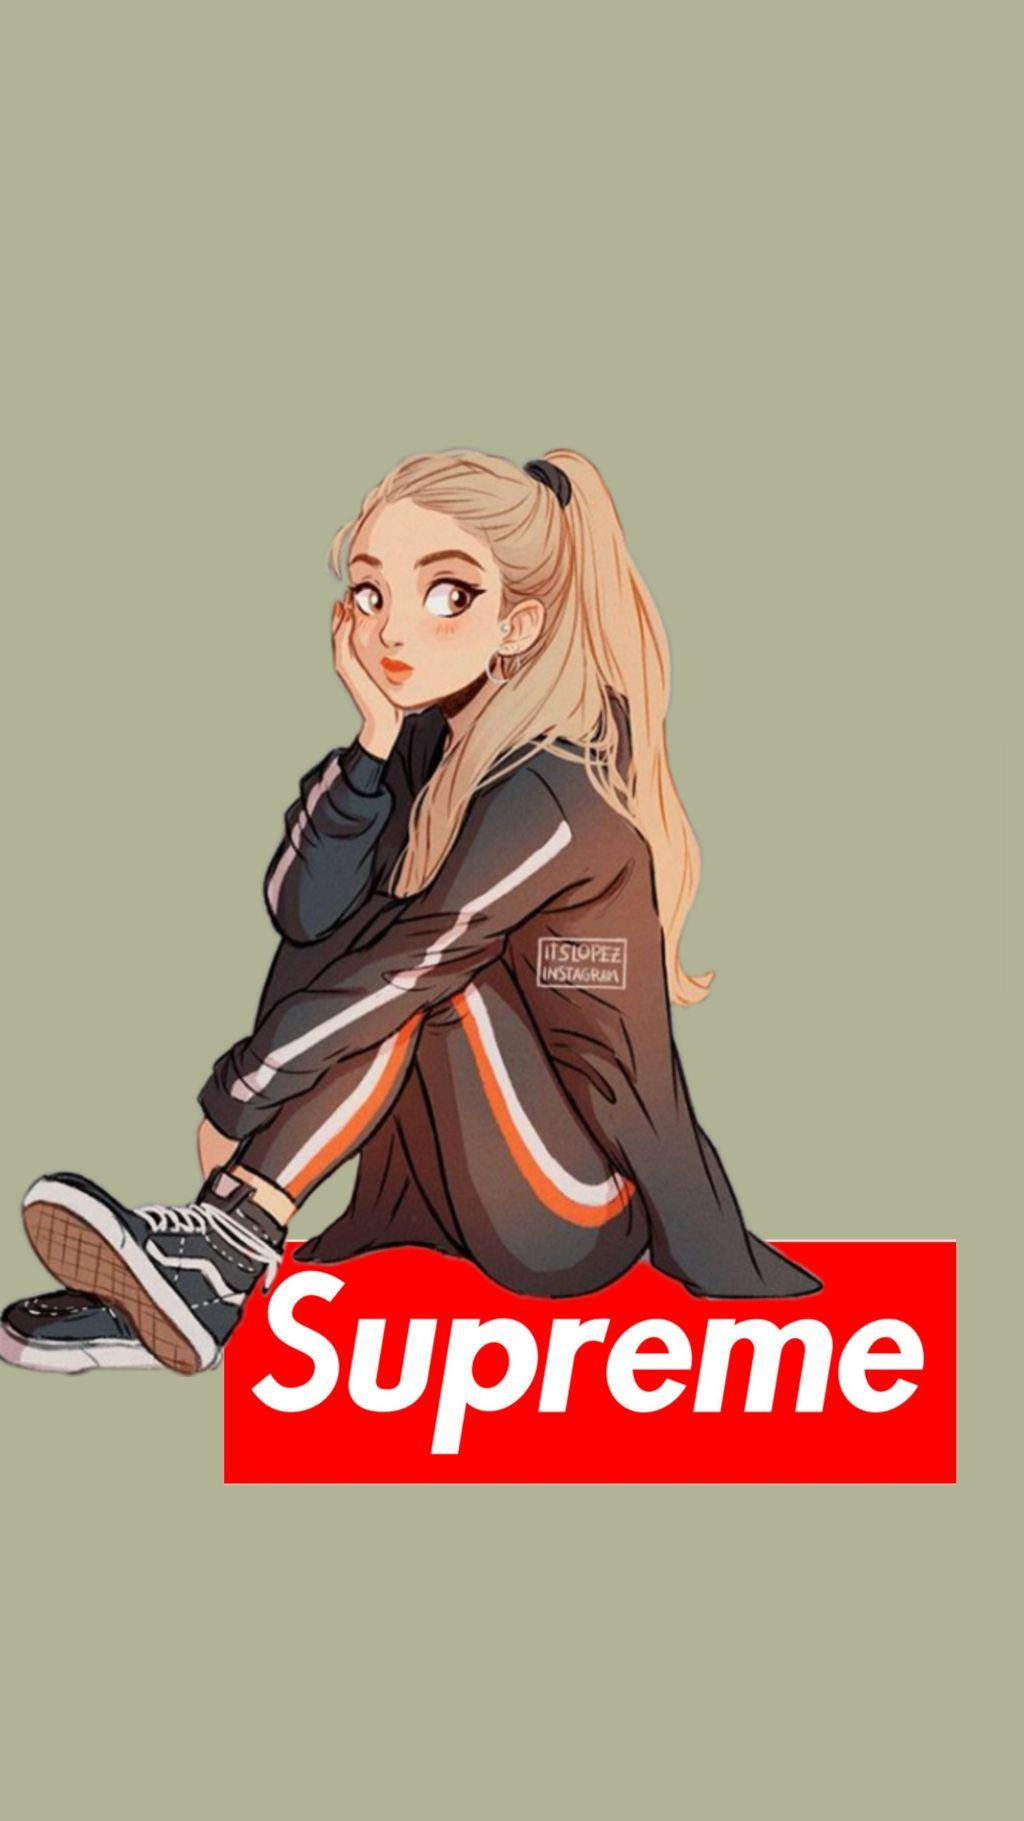 Supreme Anime Girl Wallpapers Wallpaper Cave